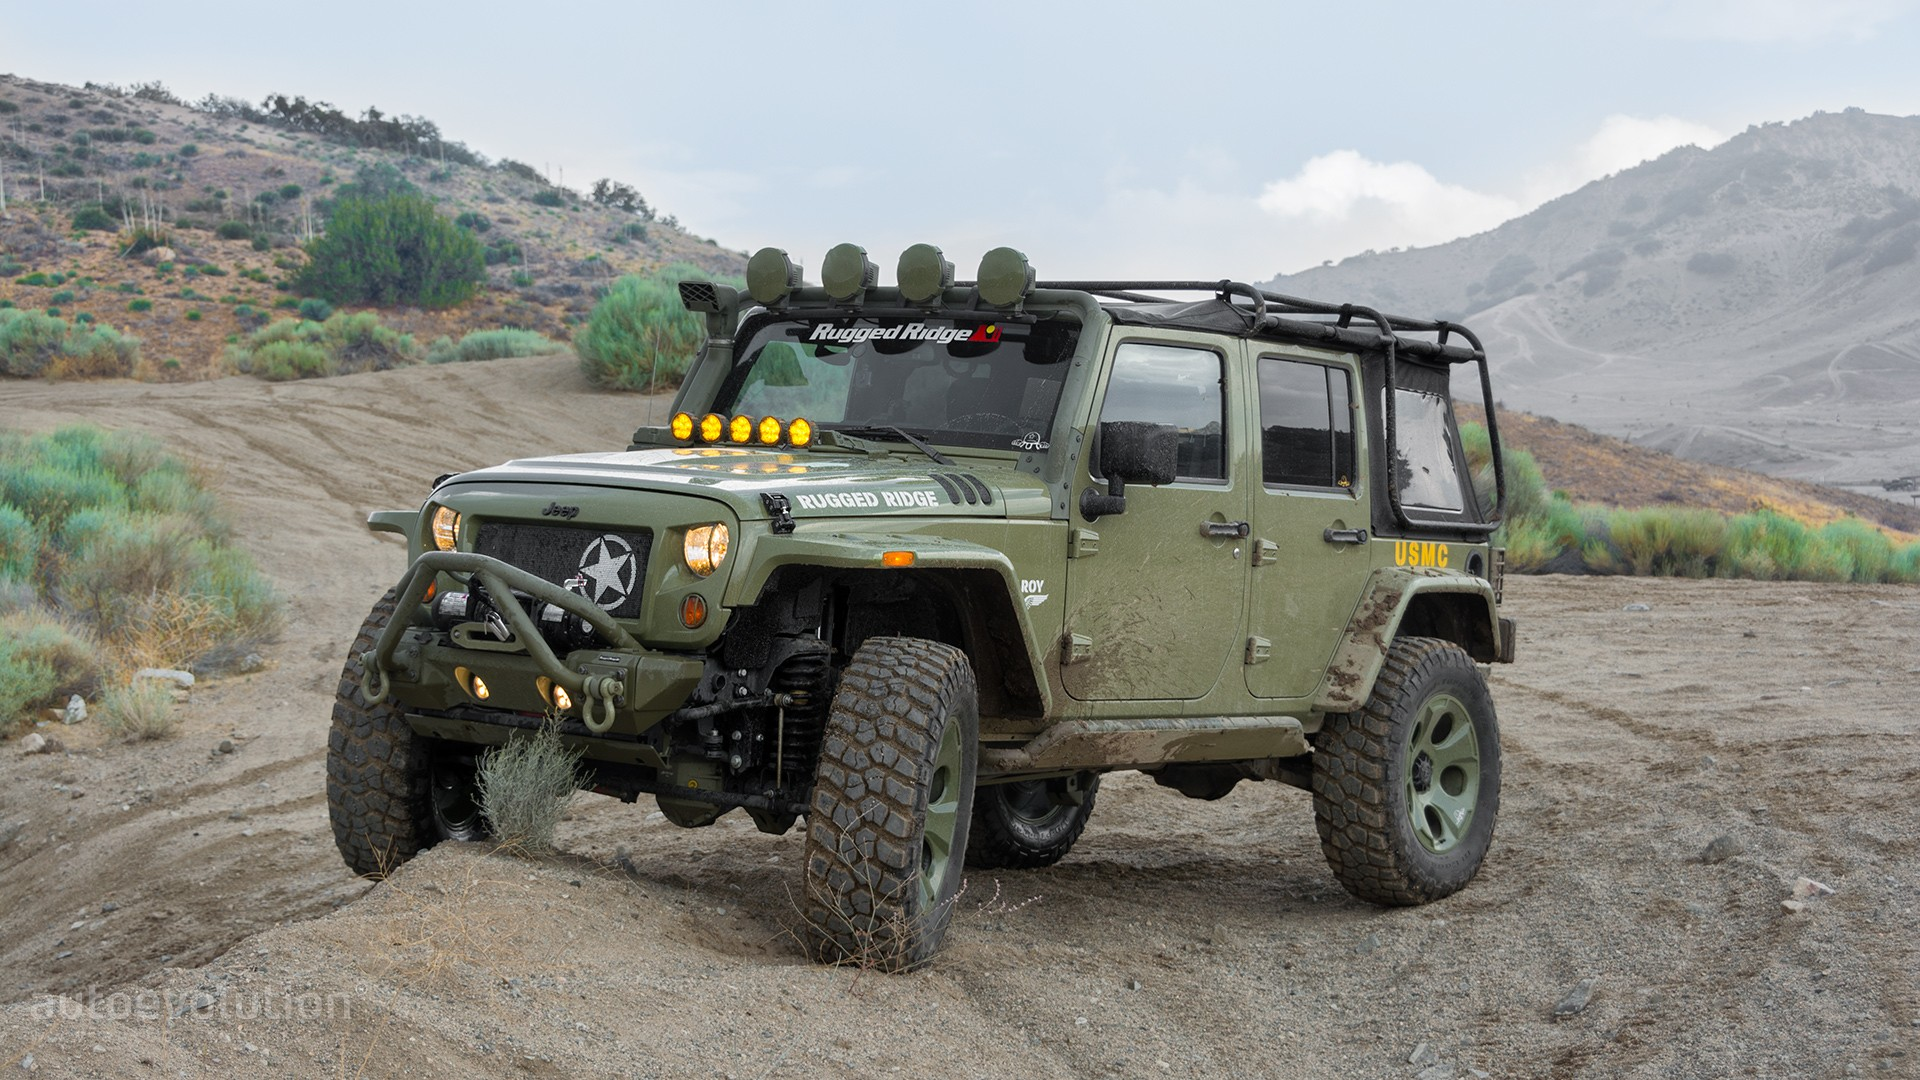 2014 Jeep Wrangler Rubicon by Rugged Ridge Review ...